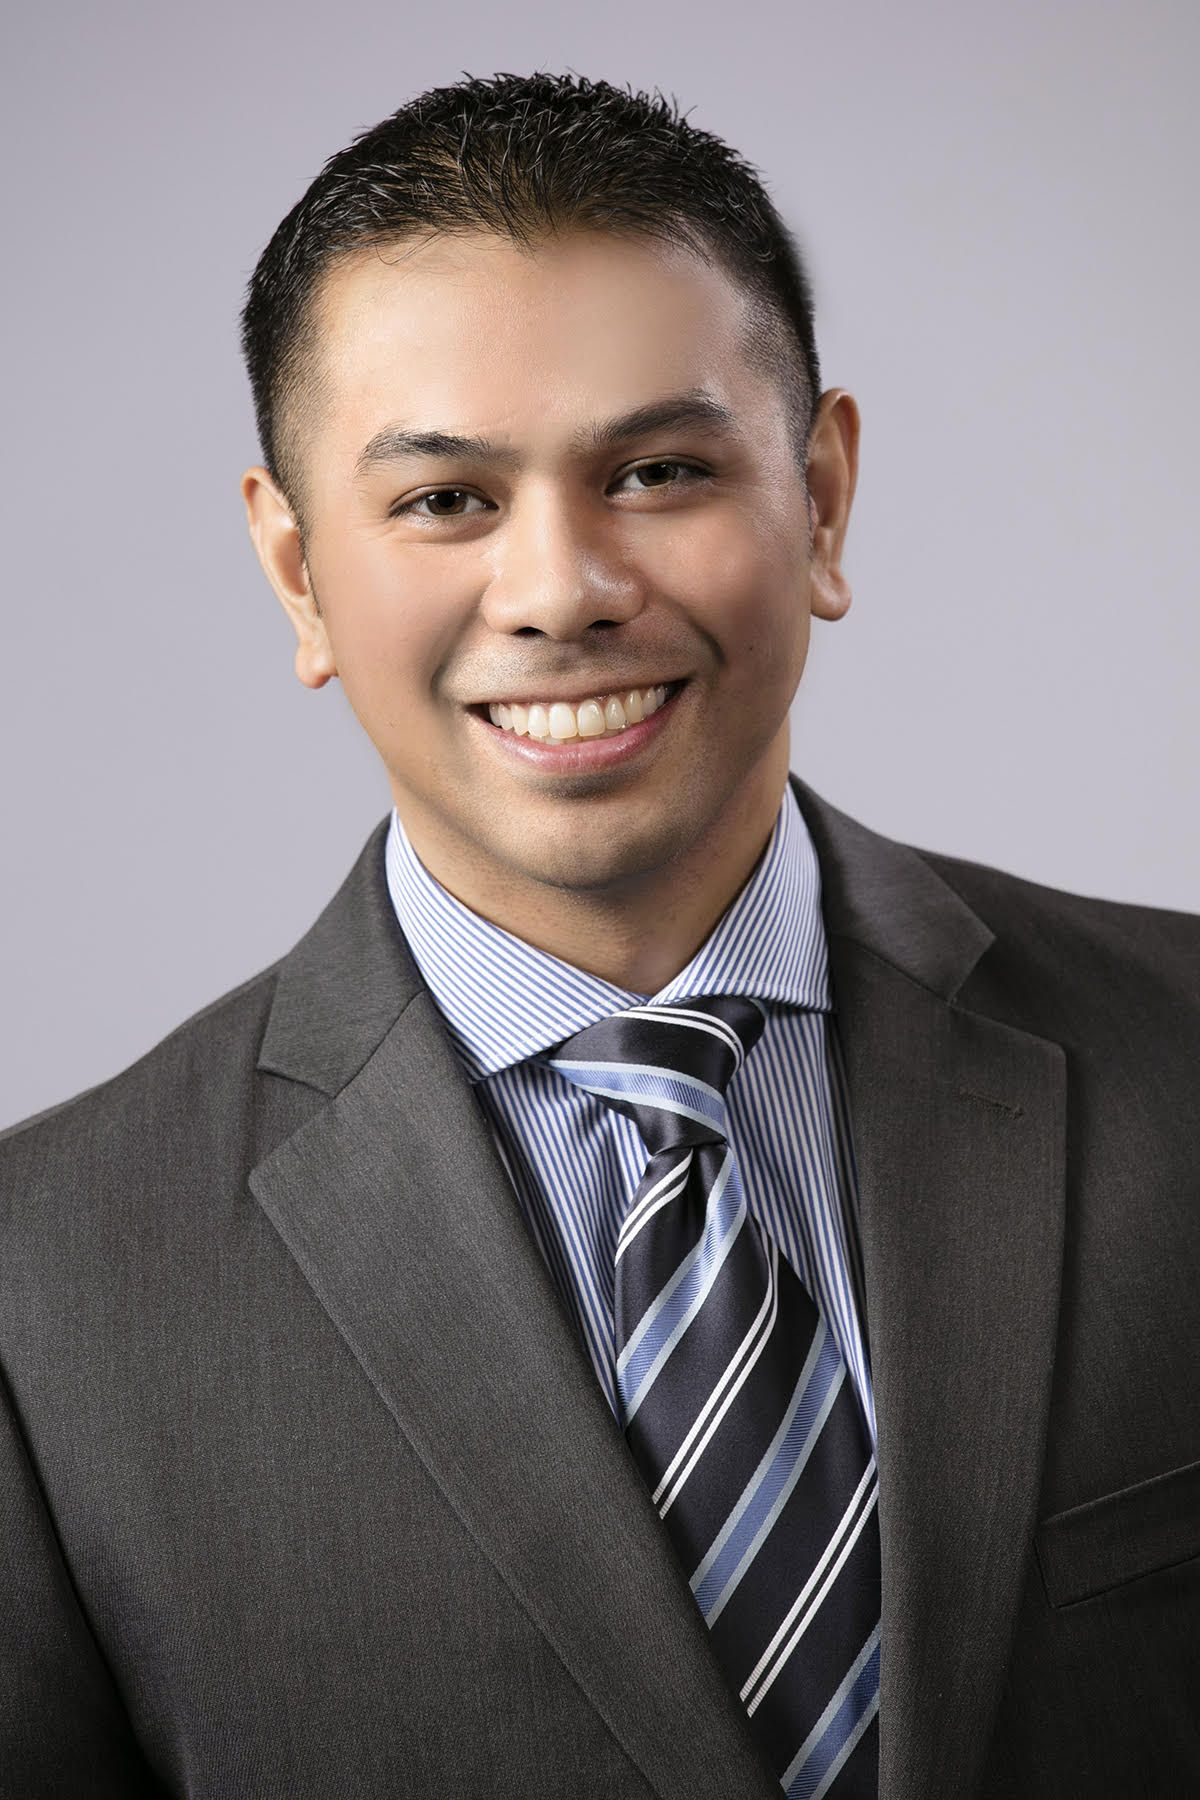 Chris Natividad is the CIO and Founder of Equbot, the AI stock picking fund